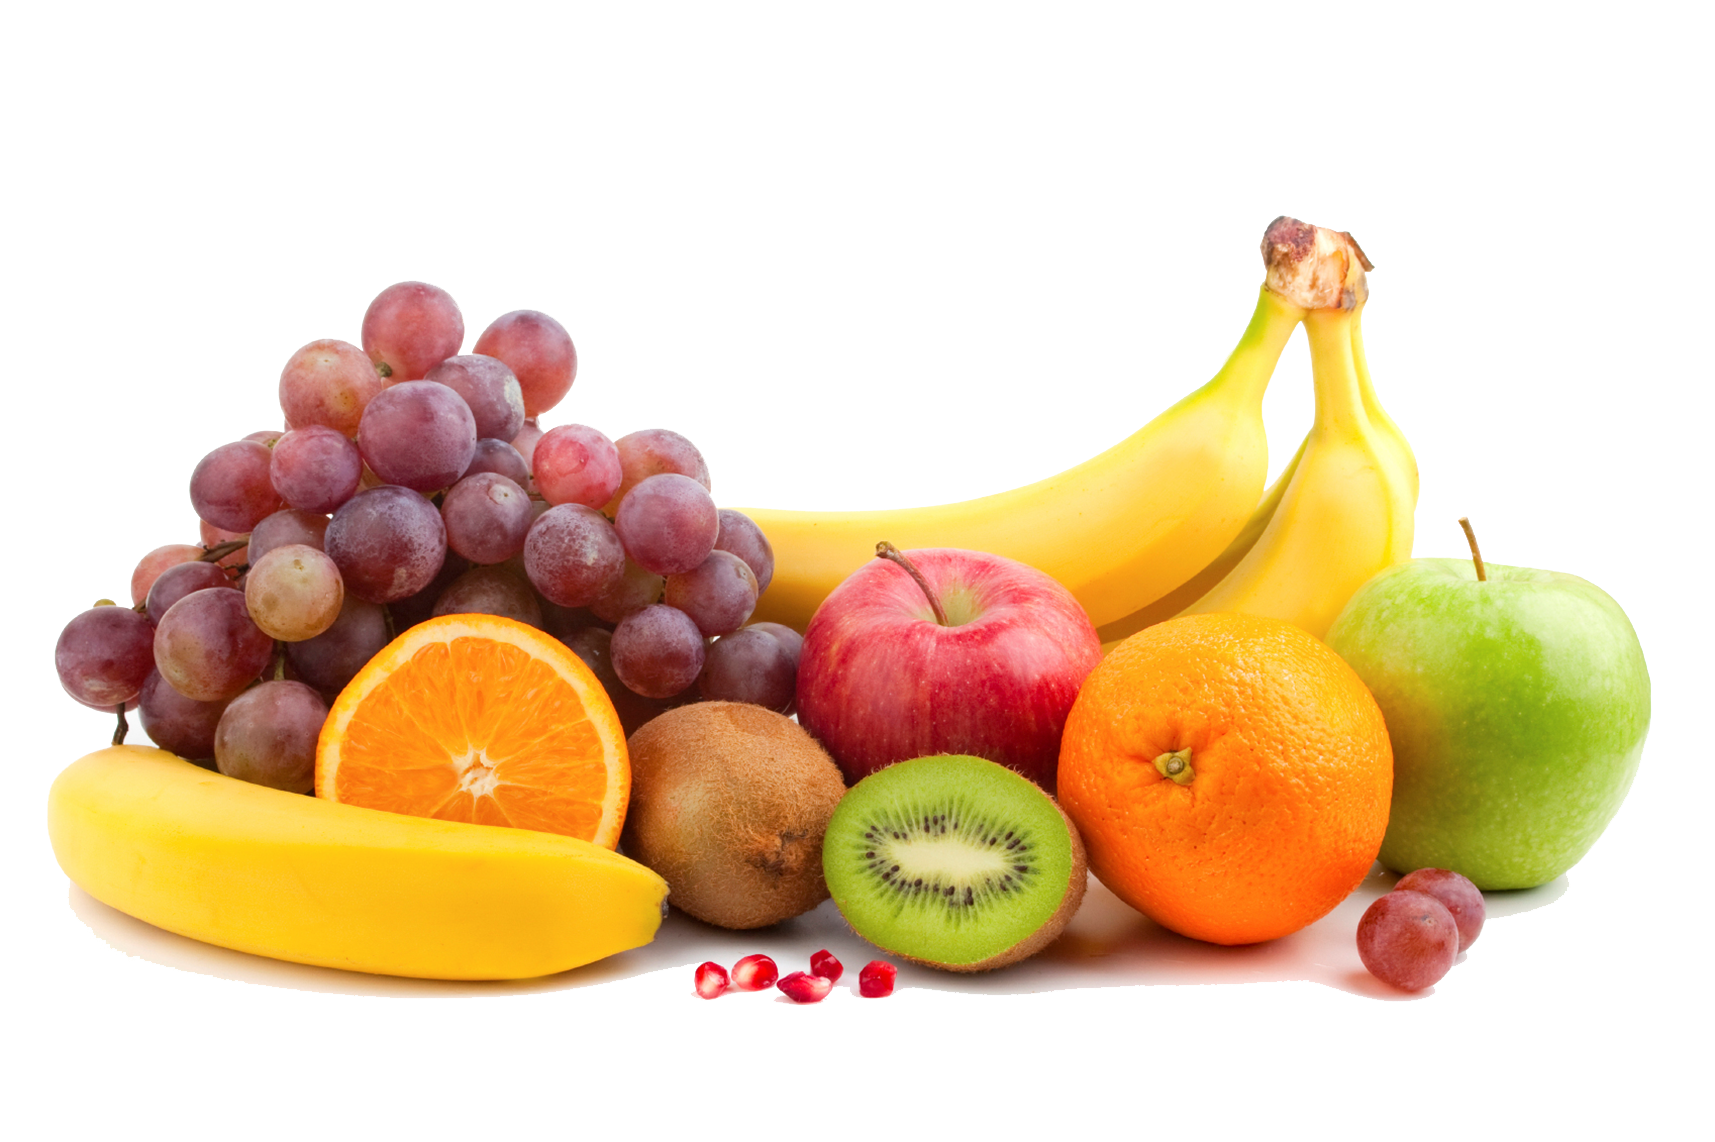 svg library stock Transparent fruit background.  fruits for free.